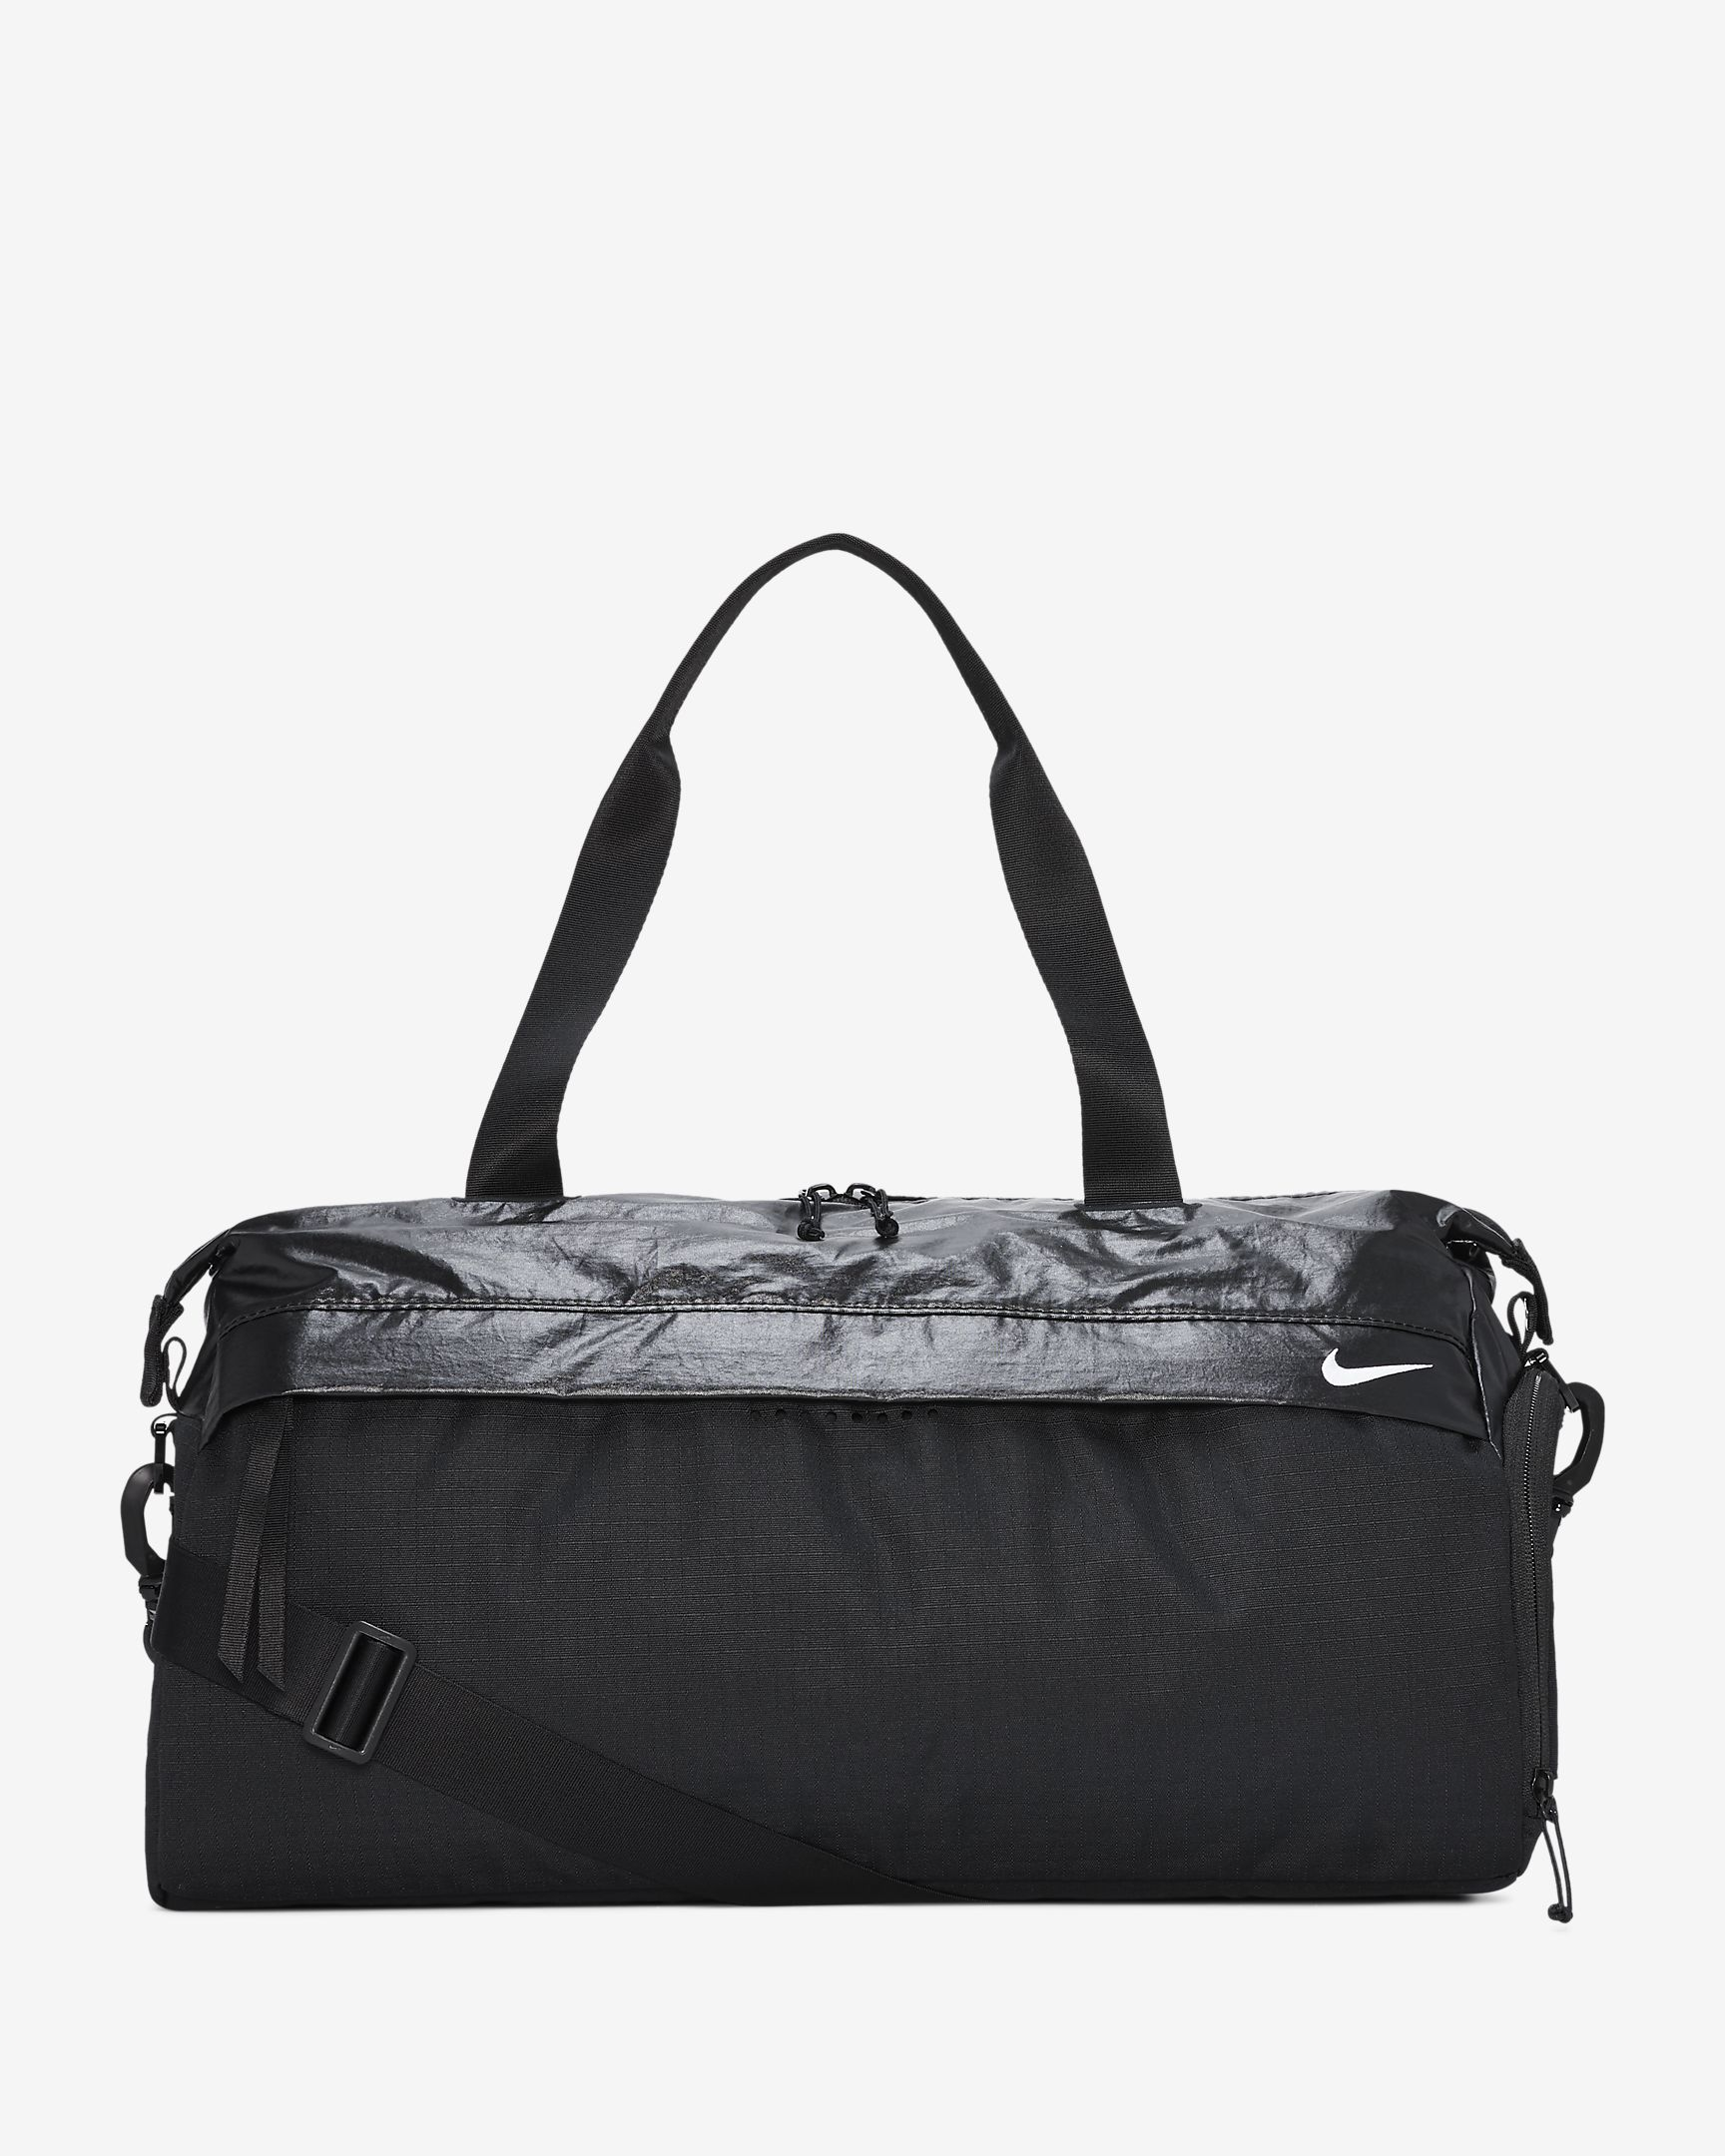 Nike Womens Radiate Club 2.0 Training Bag - Black/Black/White SP-Accessories-Bags Nike